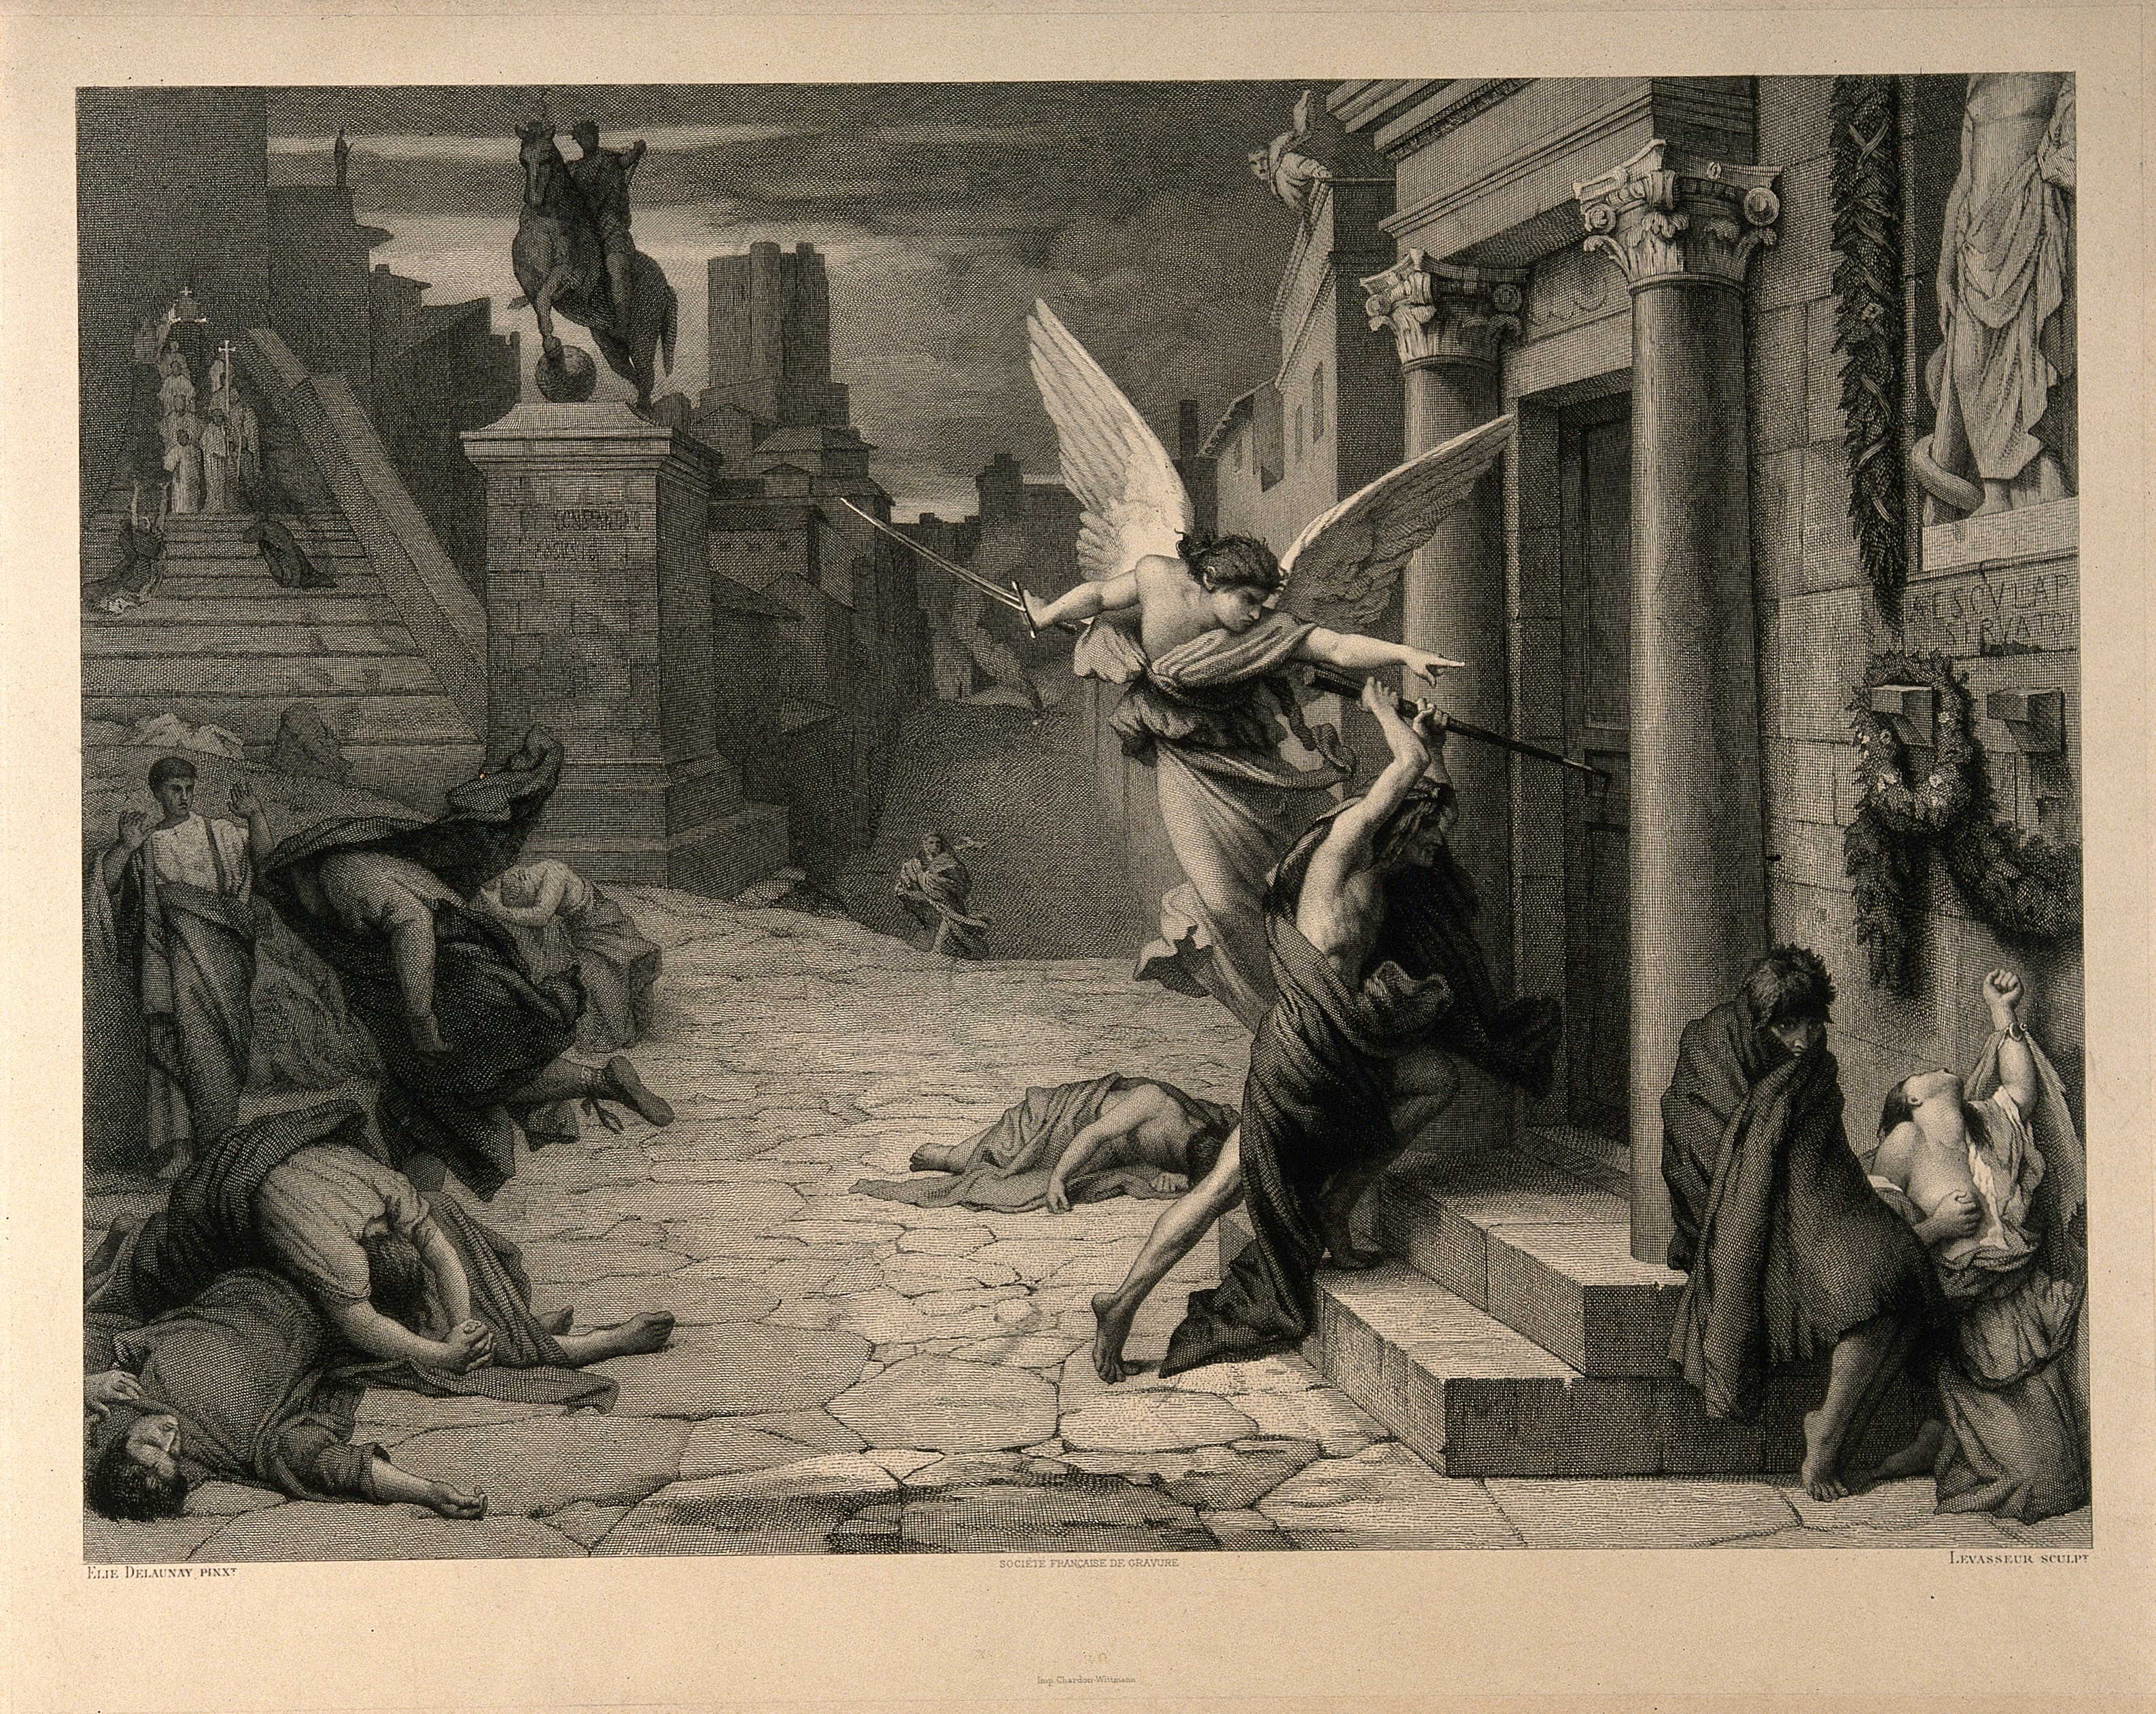 The angel of death striking a door during the plague of Rome. Engraving by Levasseur after J. Delaunay.